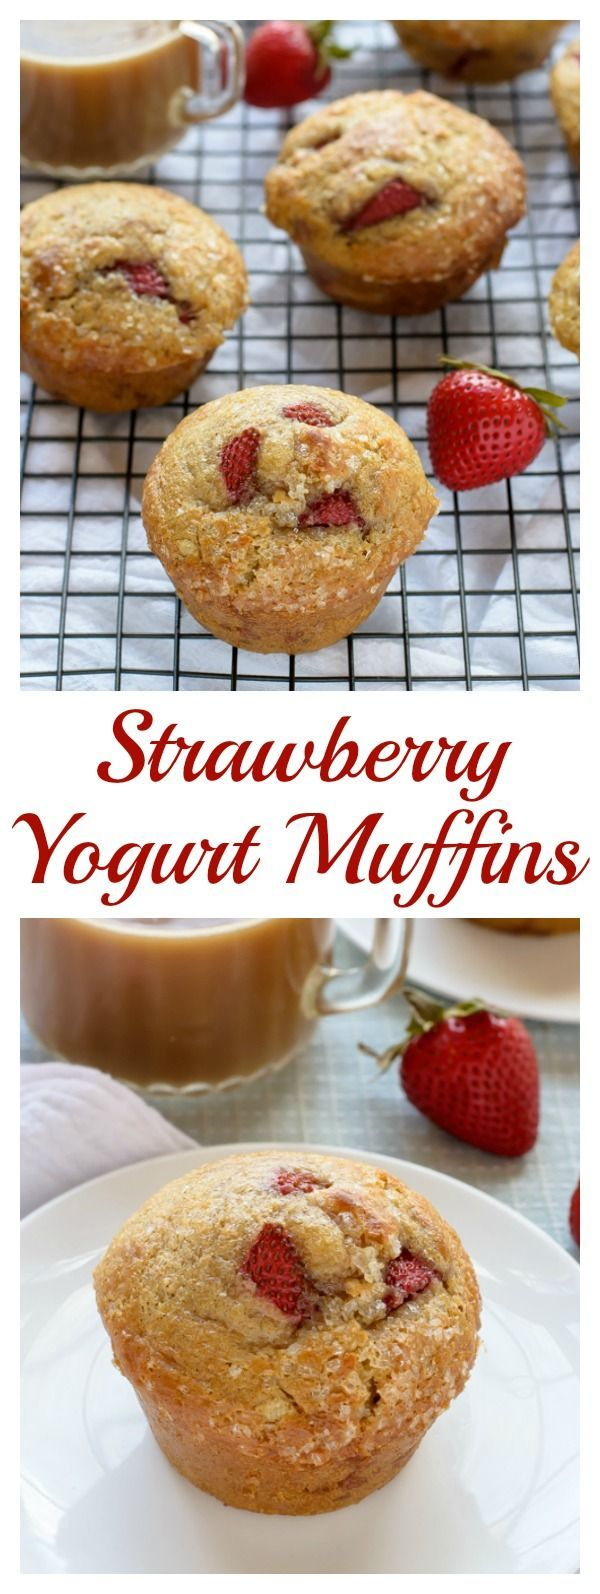 Ultra moist Strawberry Yogurt Muffins. Healthy muffins that taste so delicious, you'll never know they are good for you!